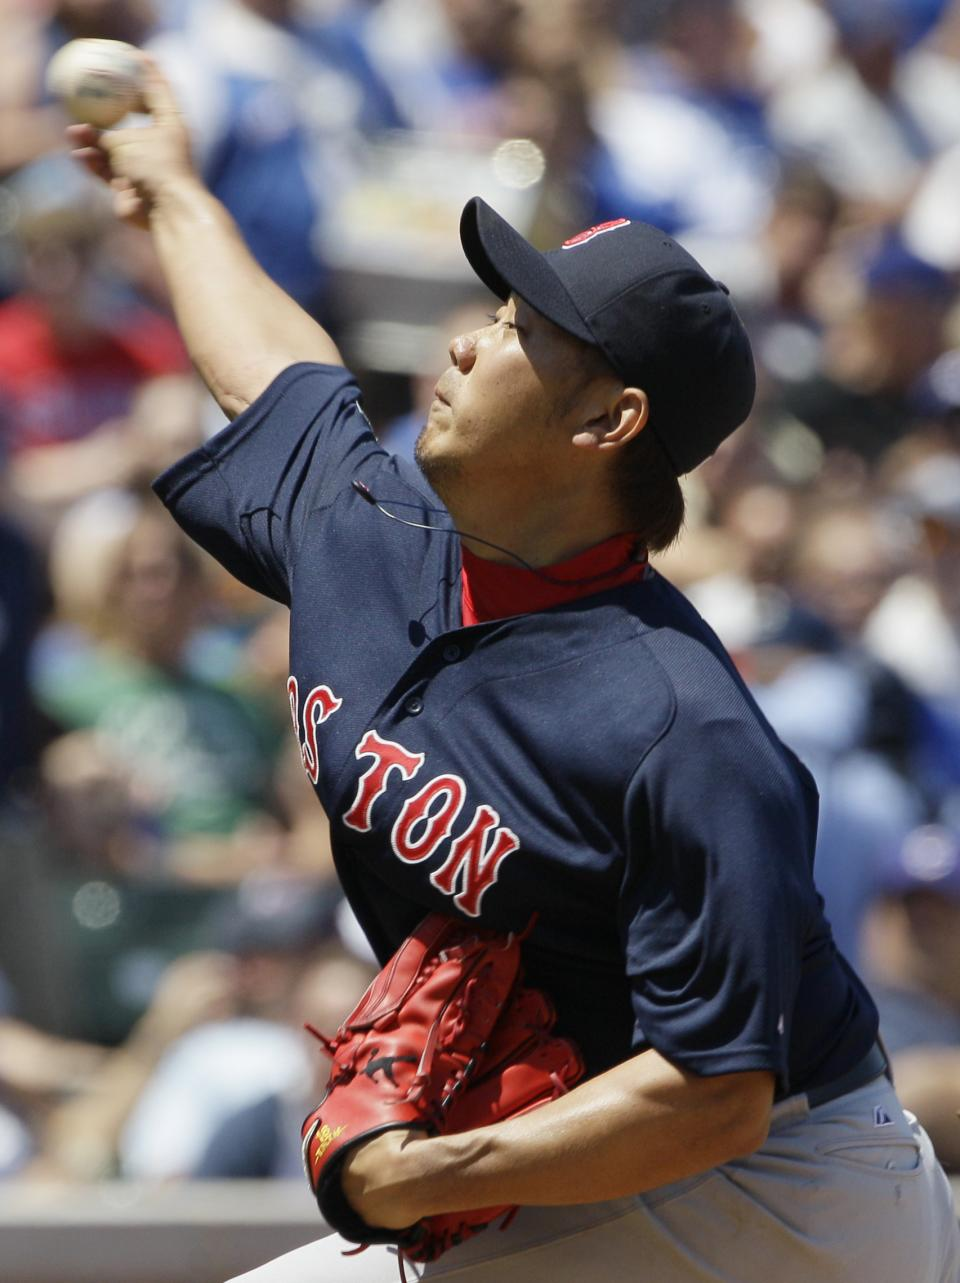 Boston Red Sox starter Daisuke Matsuzaka, of Japan, throws against the Chicago Cubs during the first inning of an interleague baseball game in Chicago, Friday, June 15, 2012.  (AP Photo/Nam Y. Huh)